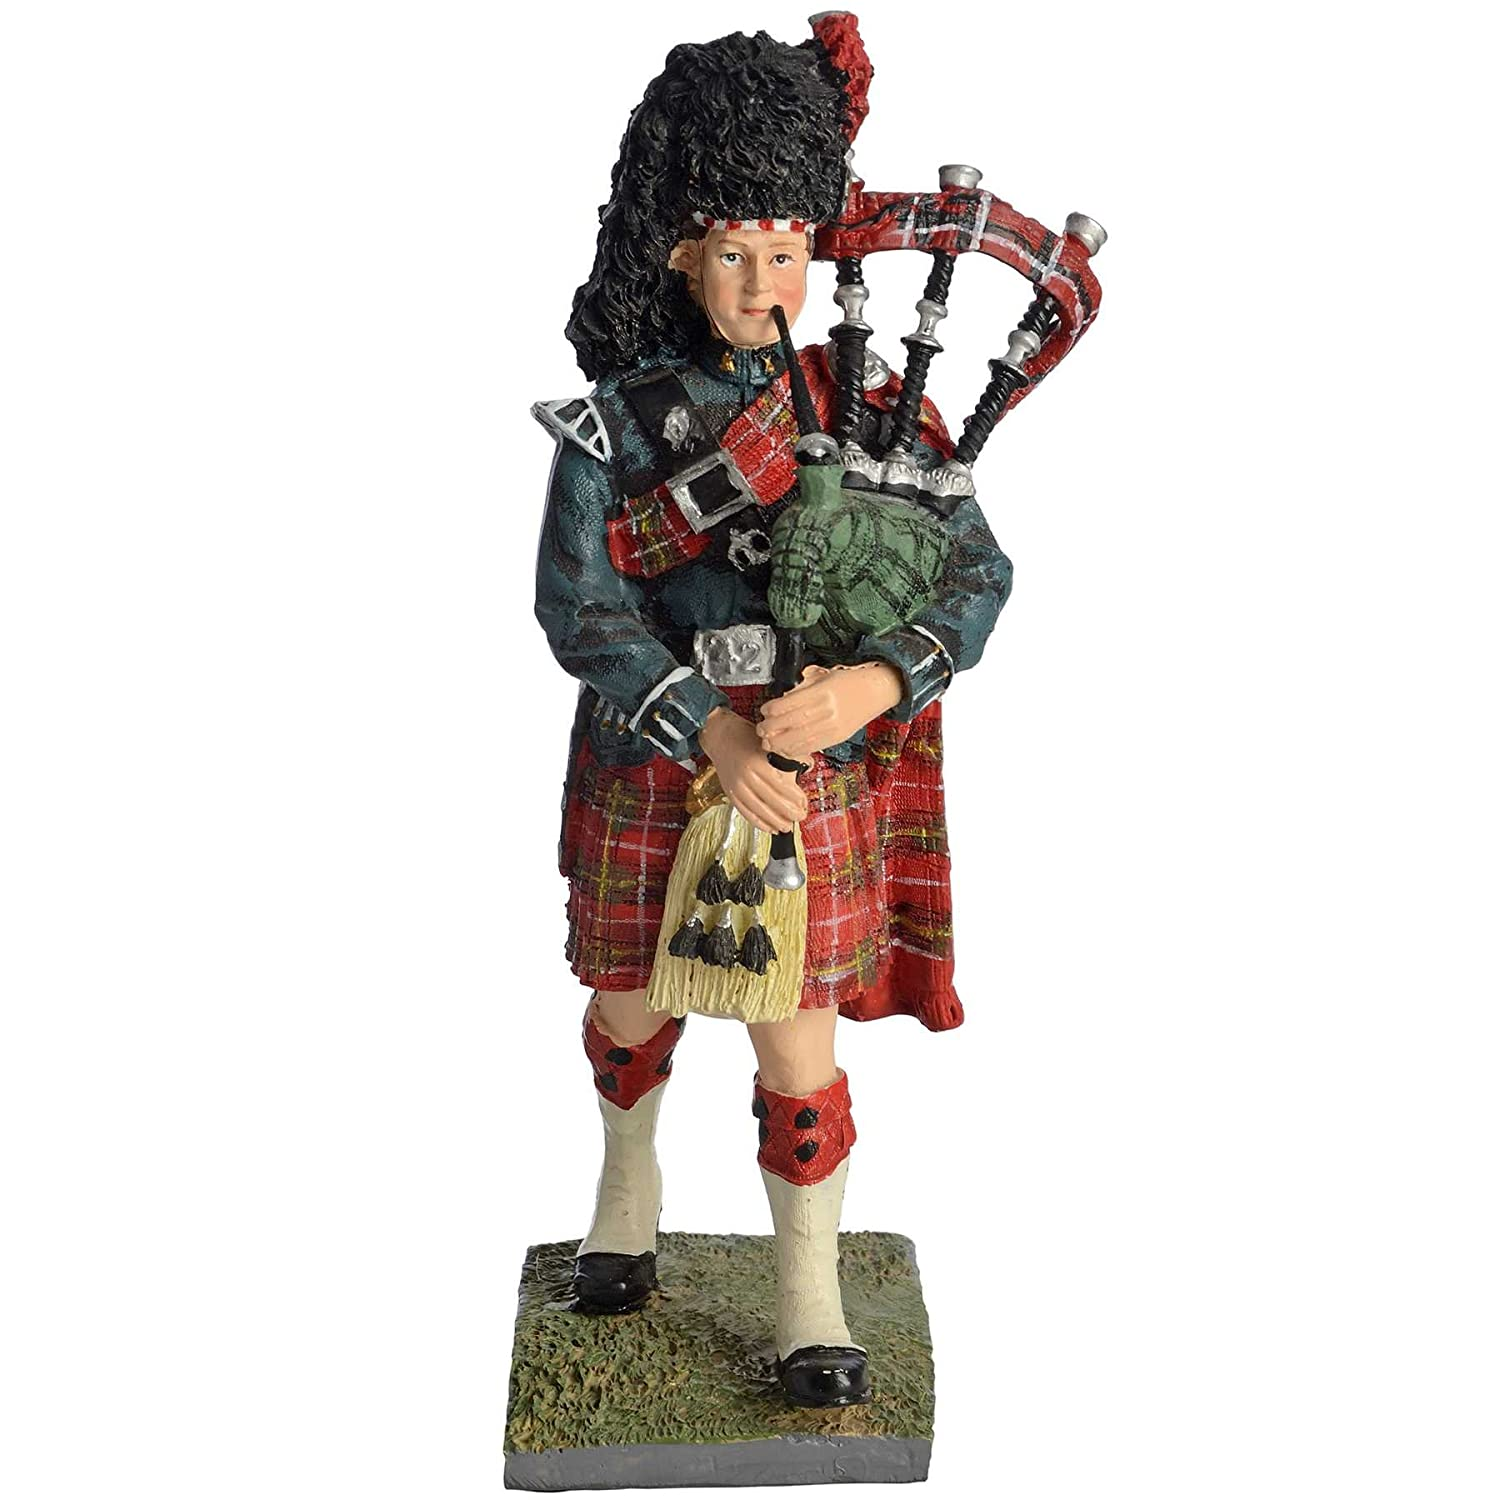 507 sculptures uk collectors resin scottish piper doll scottish